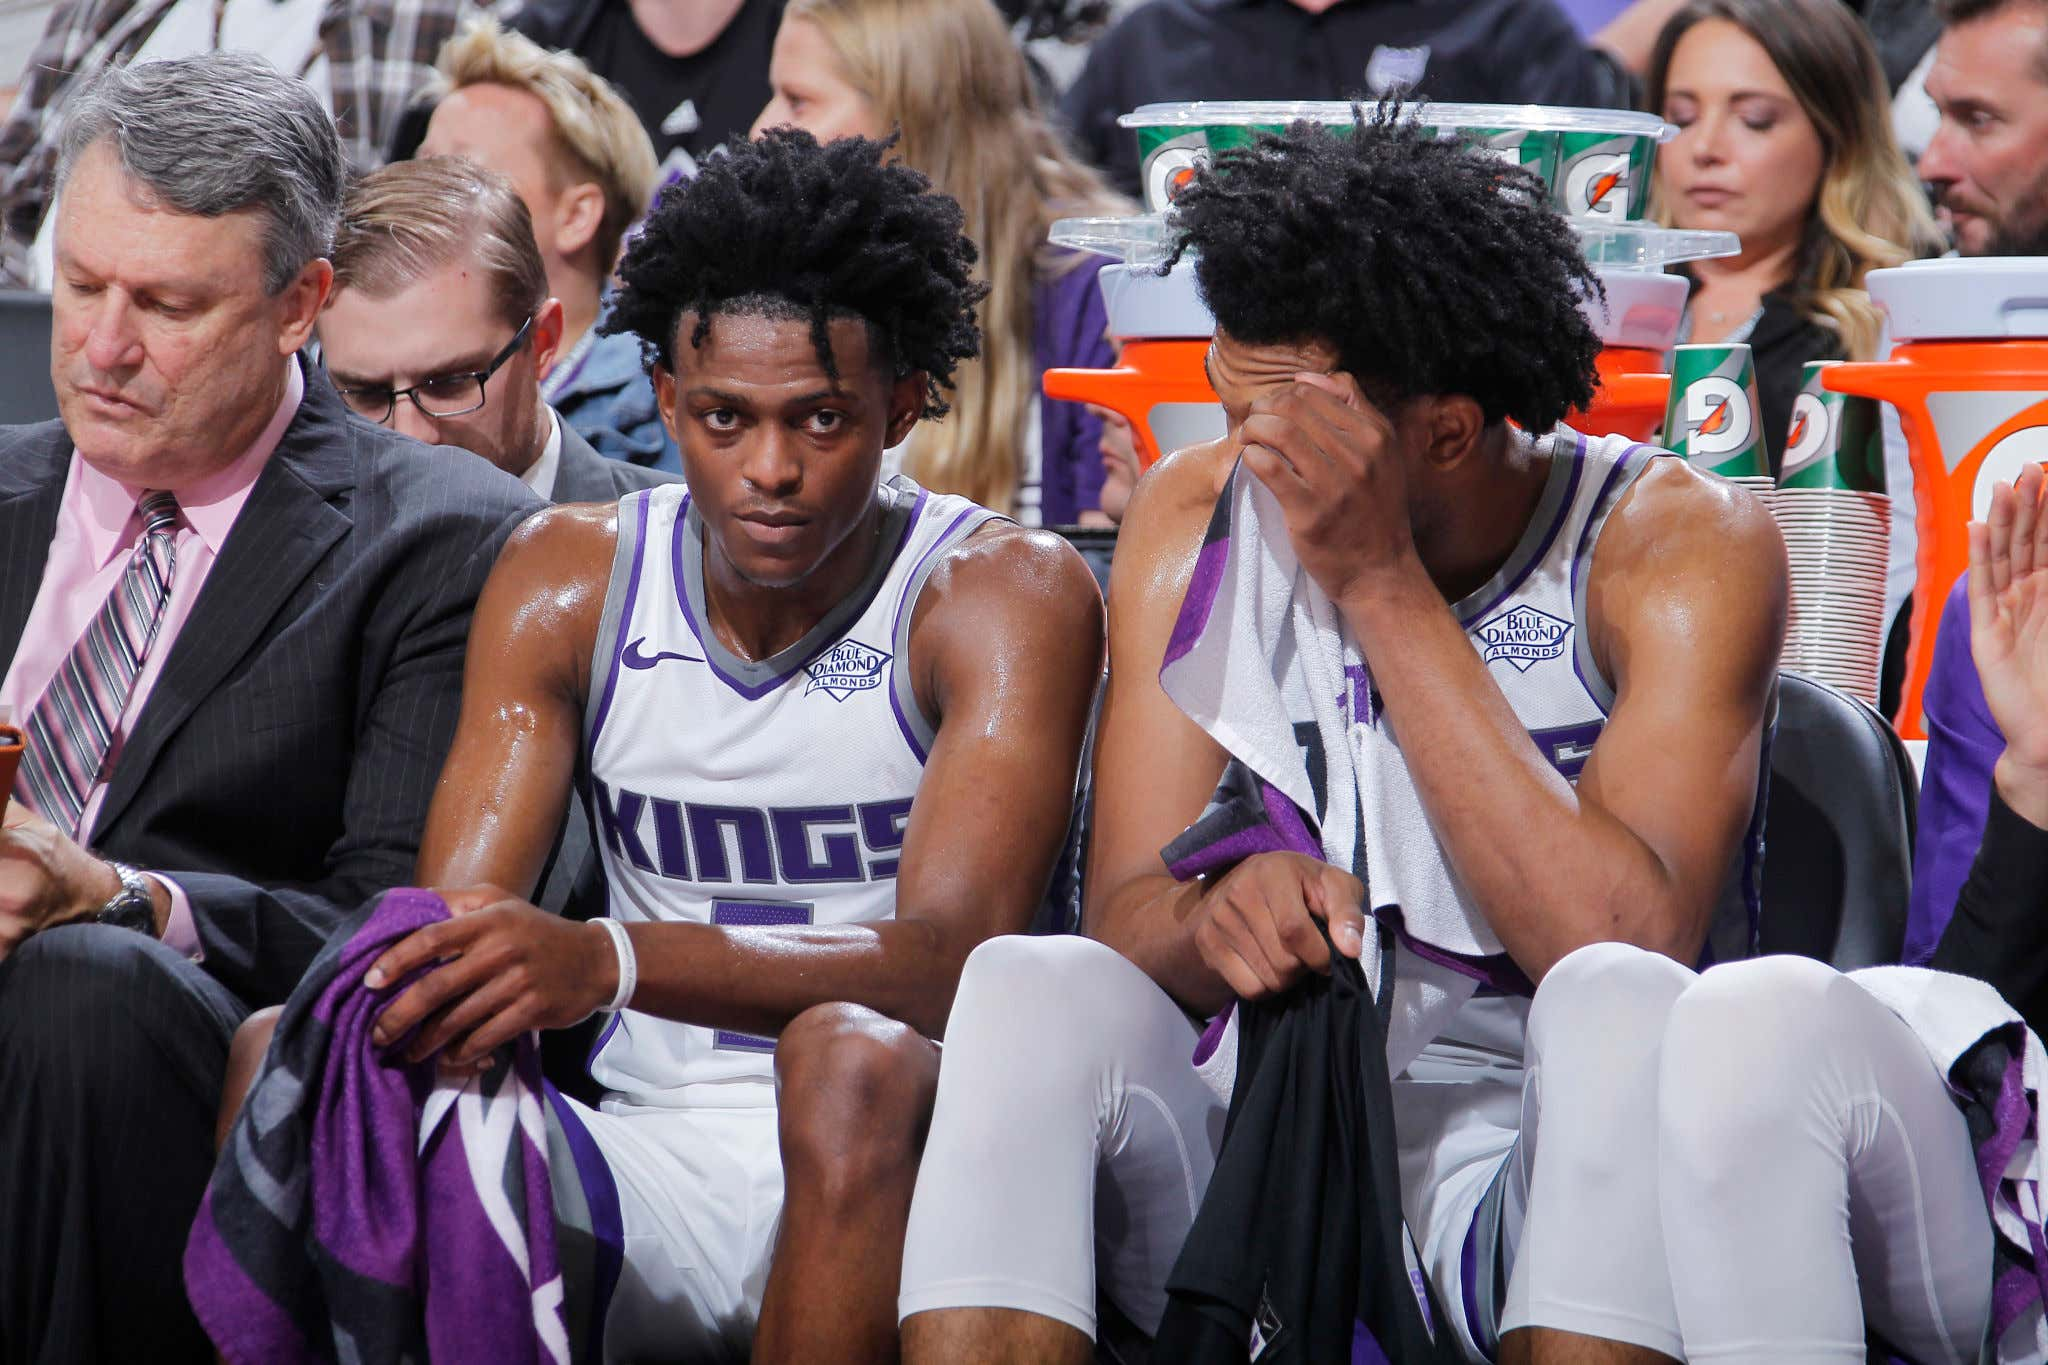 SACRAMENTO, CA - OCTOBER 11: De'Aaron Fox #5 and Marvin Bagley III #35 of the Sacramento Kings talk during the game against the Utah Jazz on October 11, 2018 at Golden 1 Center in Sacramento, California. NOTE TO USER: User expressly acknowledges and agrees that, by downloading and or using this photograph, User is consenting to the terms and conditions of the Getty Images Agreement. Mandatory Copyright Notice: Copyright 2018 NBAE (Photo by Rocky Widner/NBAE via Getty Images)